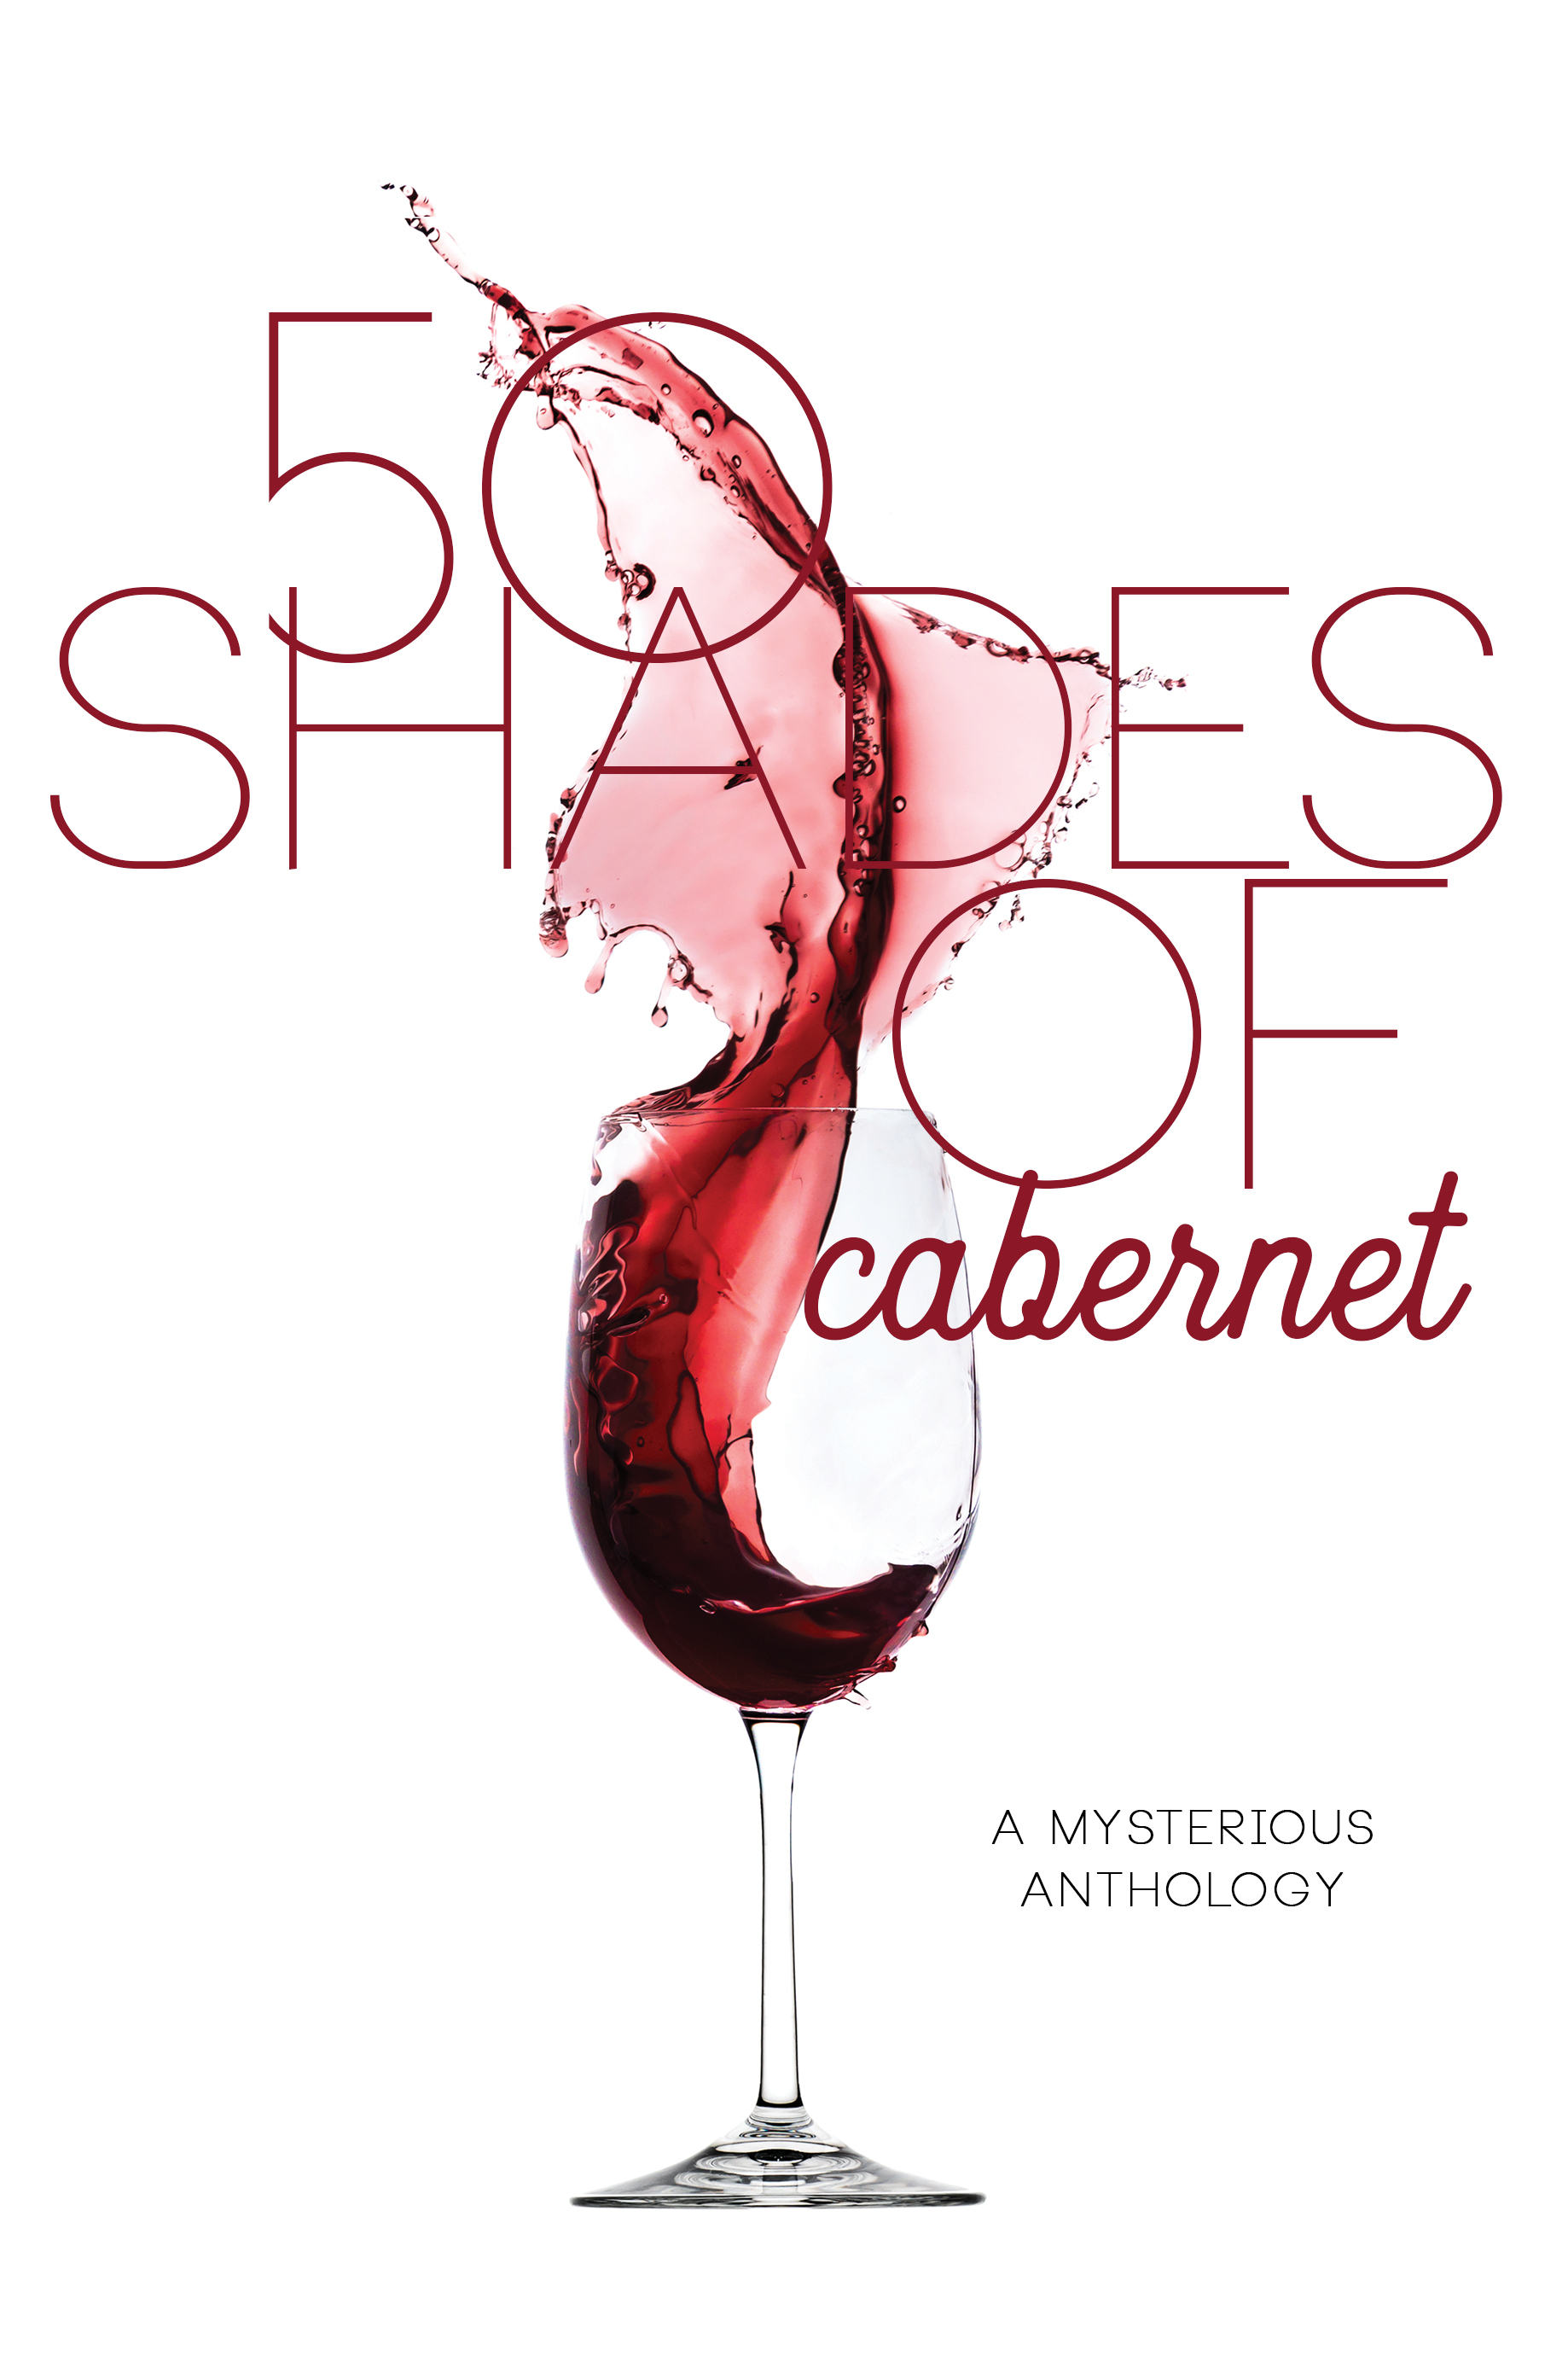 50 shades of cabernet cover.jpg